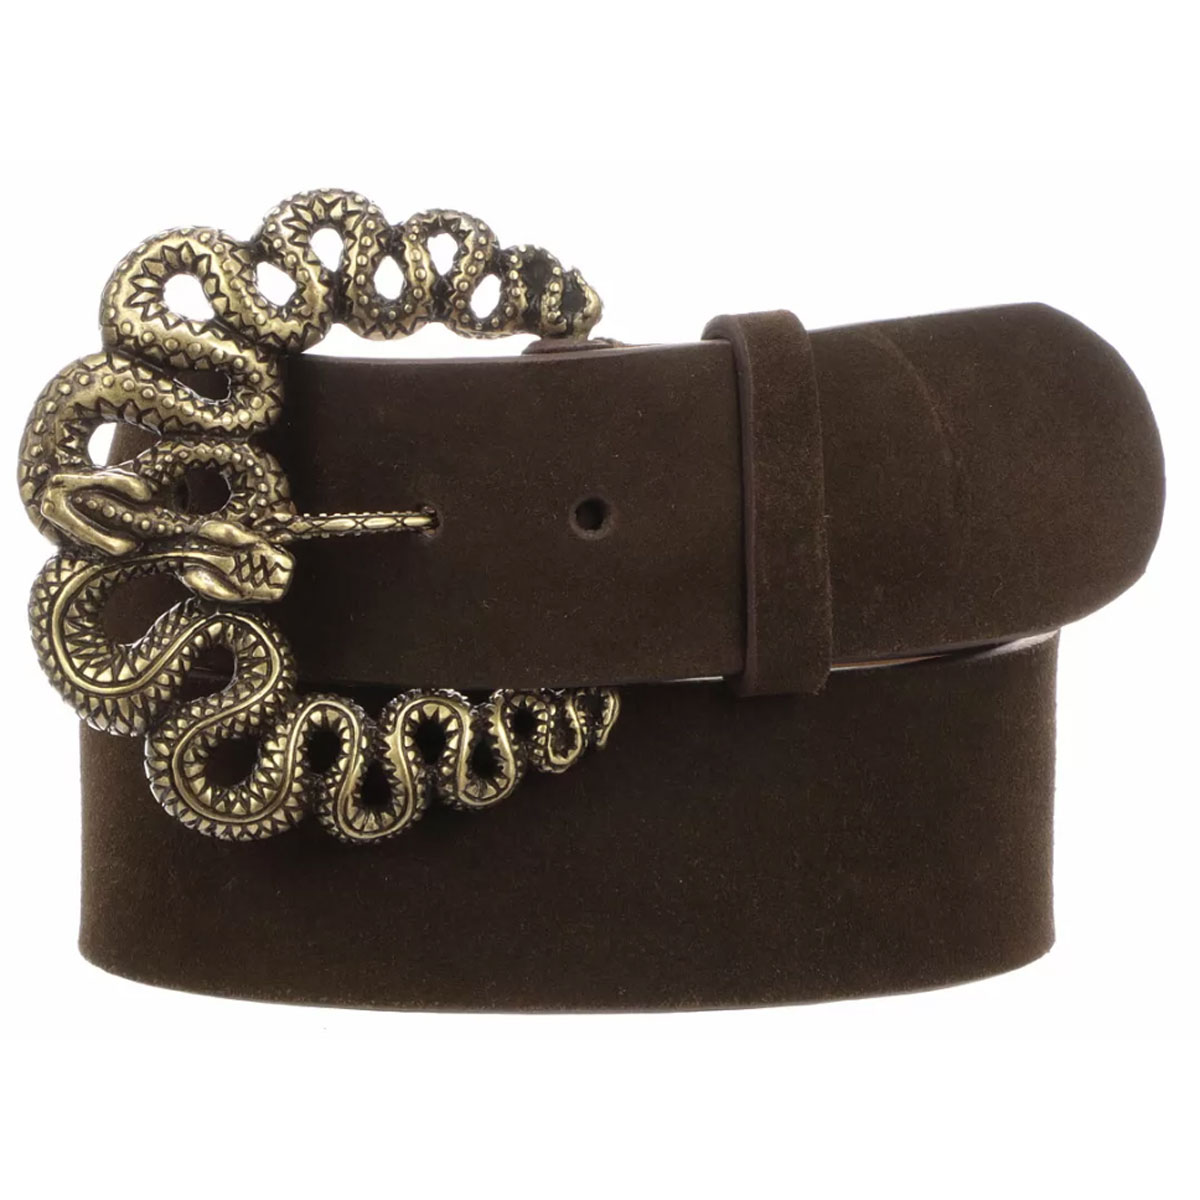 Lucchese Women's Dark Chocolate Suede Snake Buckle Belt